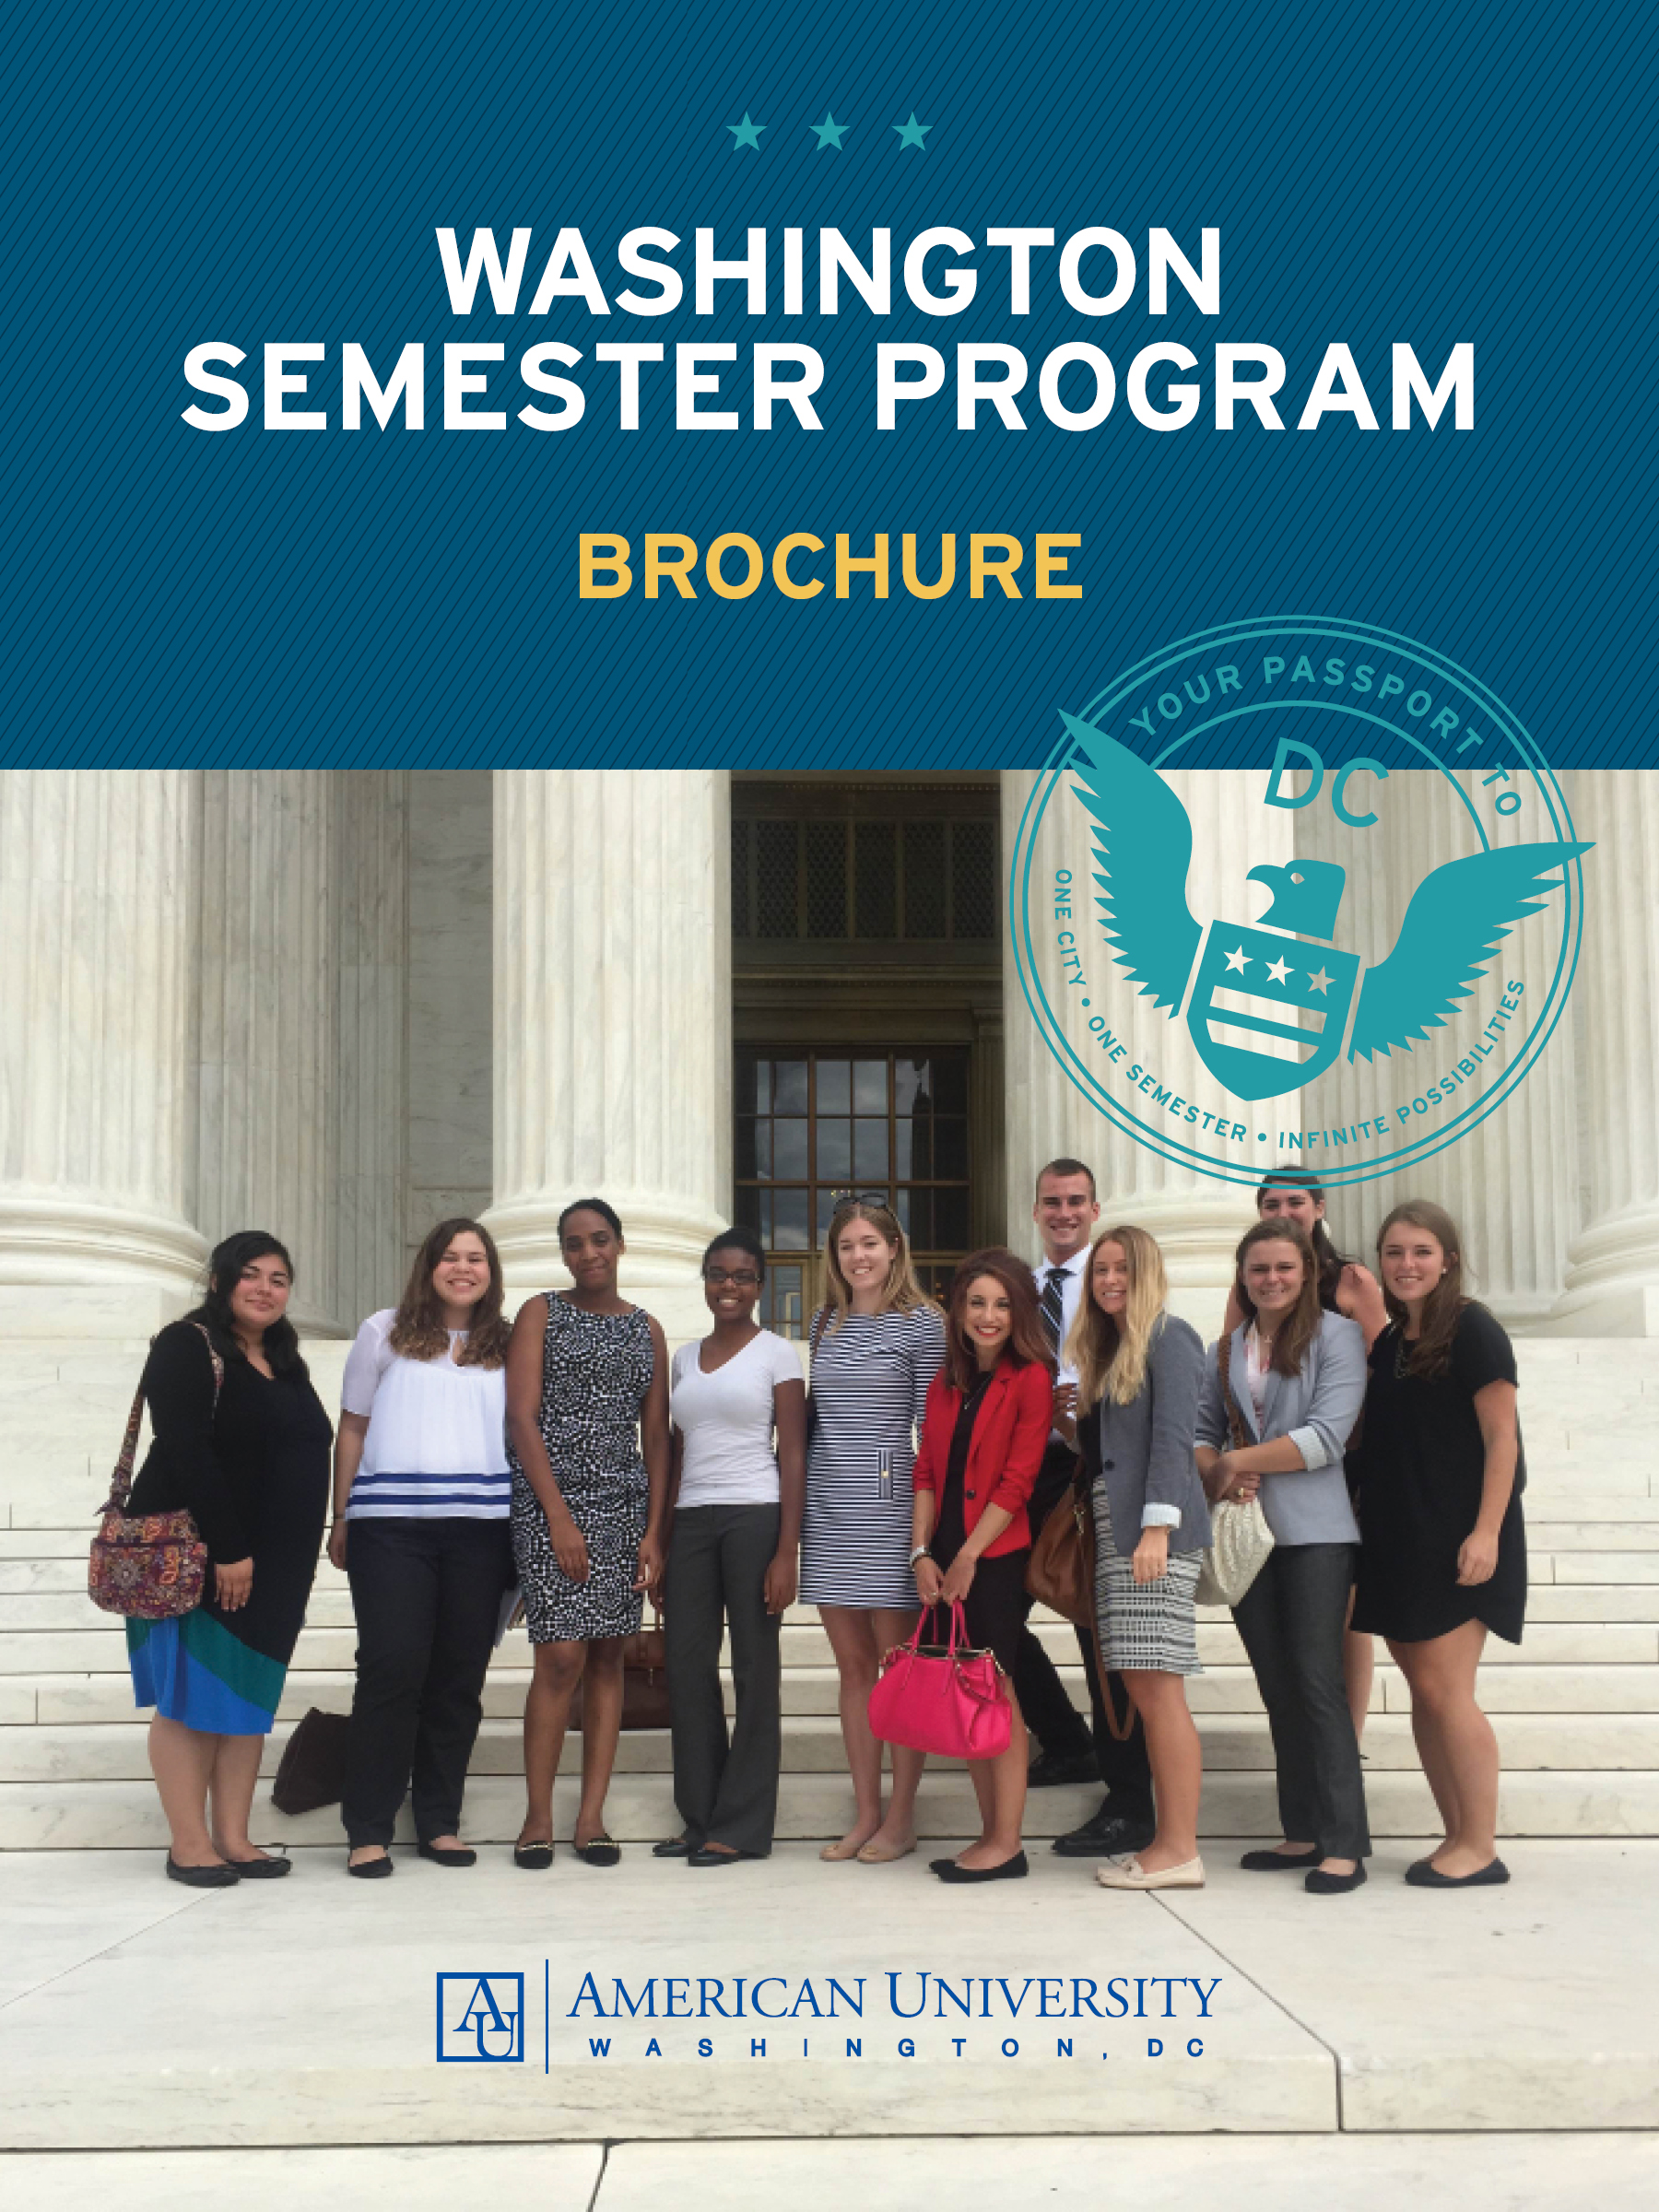 Washington Semester Program Brochure